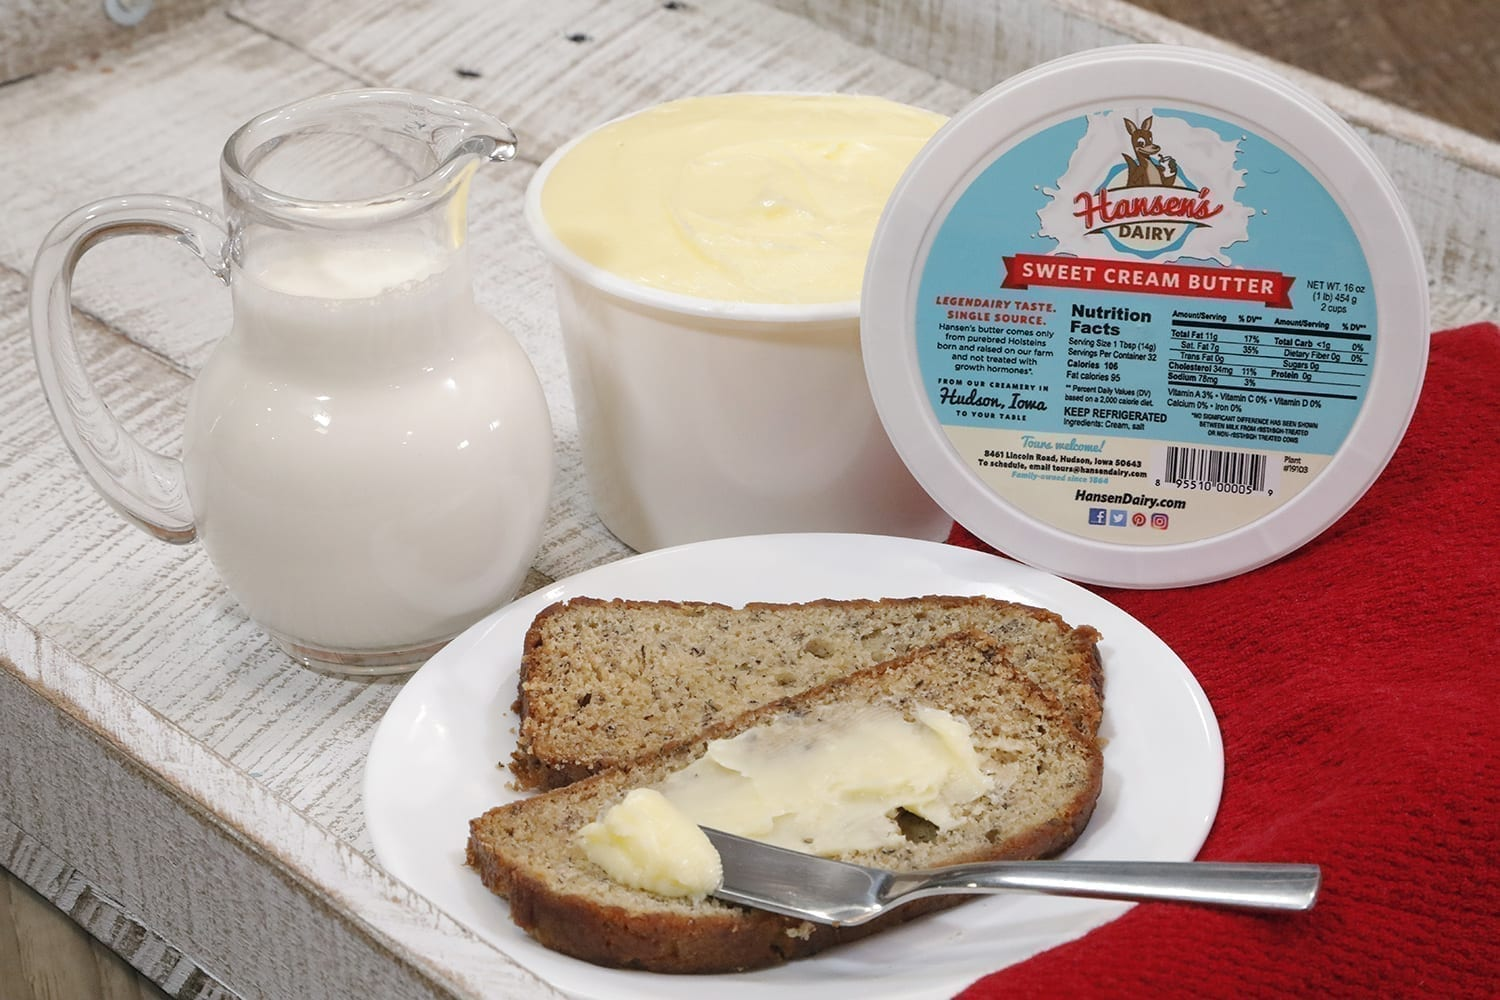 hansen_dairy_sweet_cream_butter